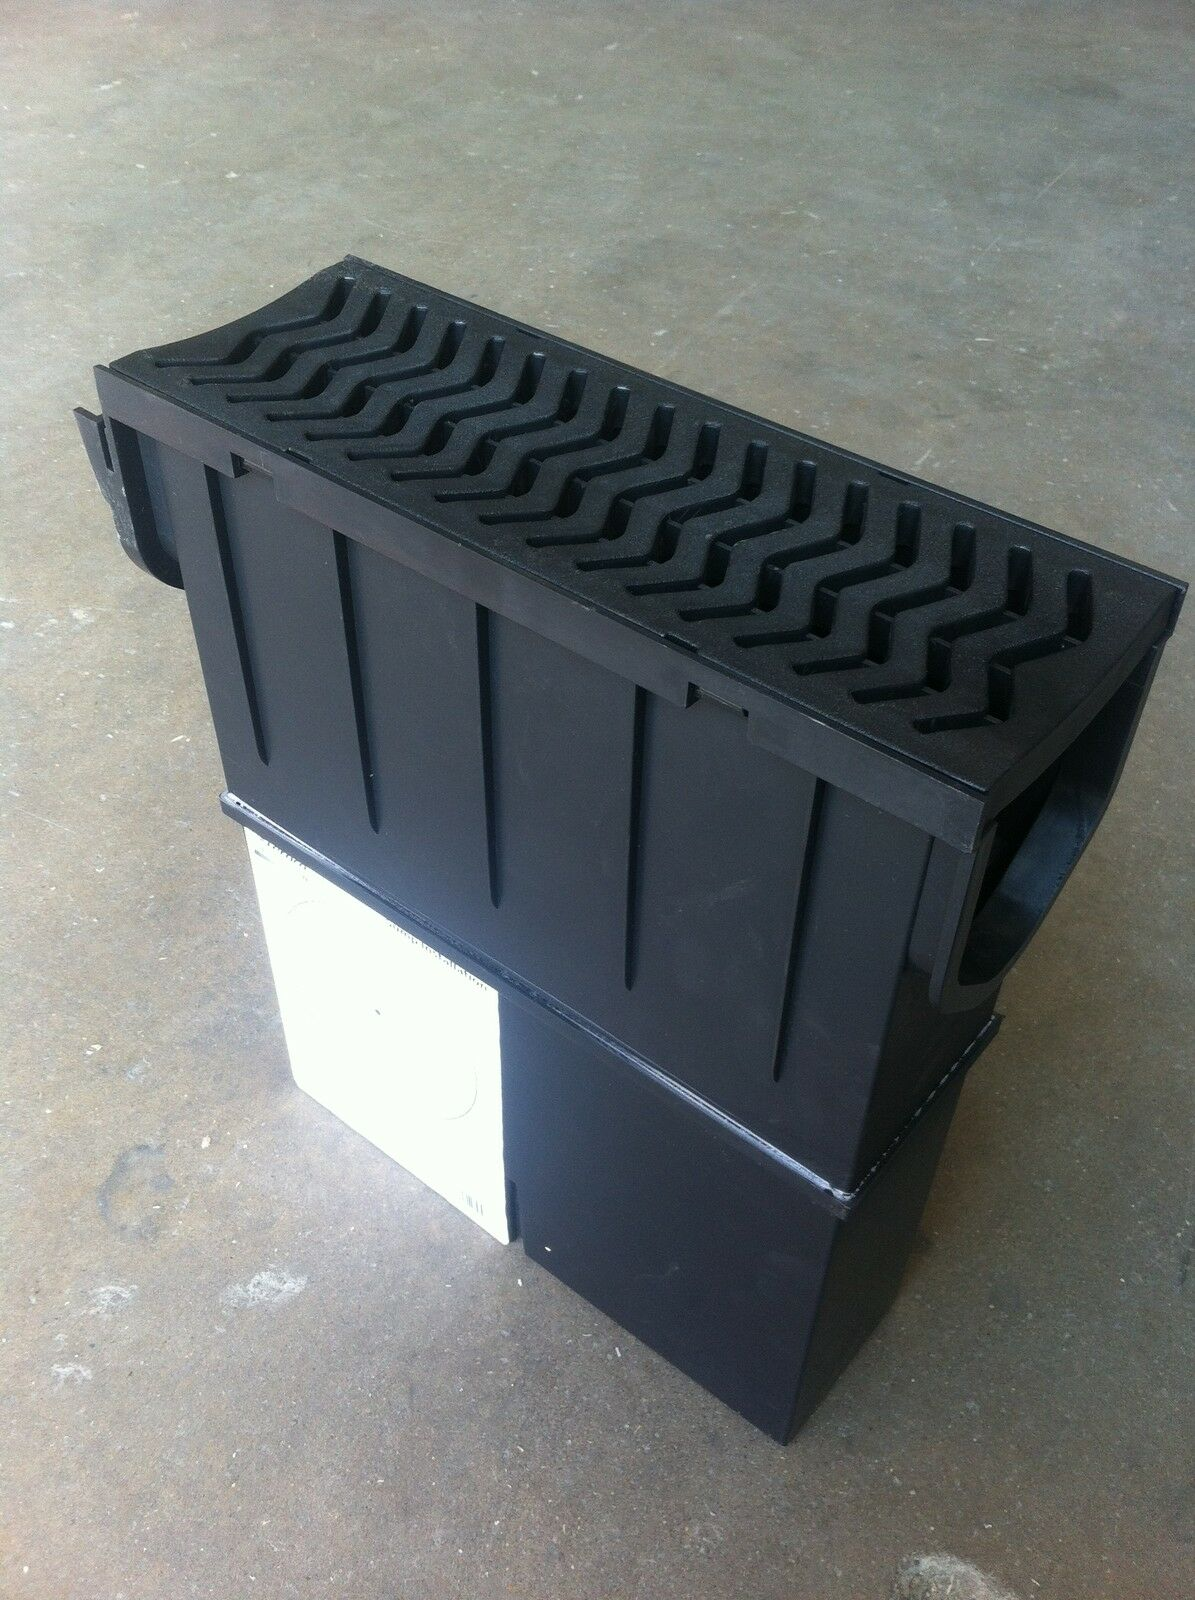 Stormwater Drainage Collection Boxes : Drainage channel pvc topped heelguard sump box fernco